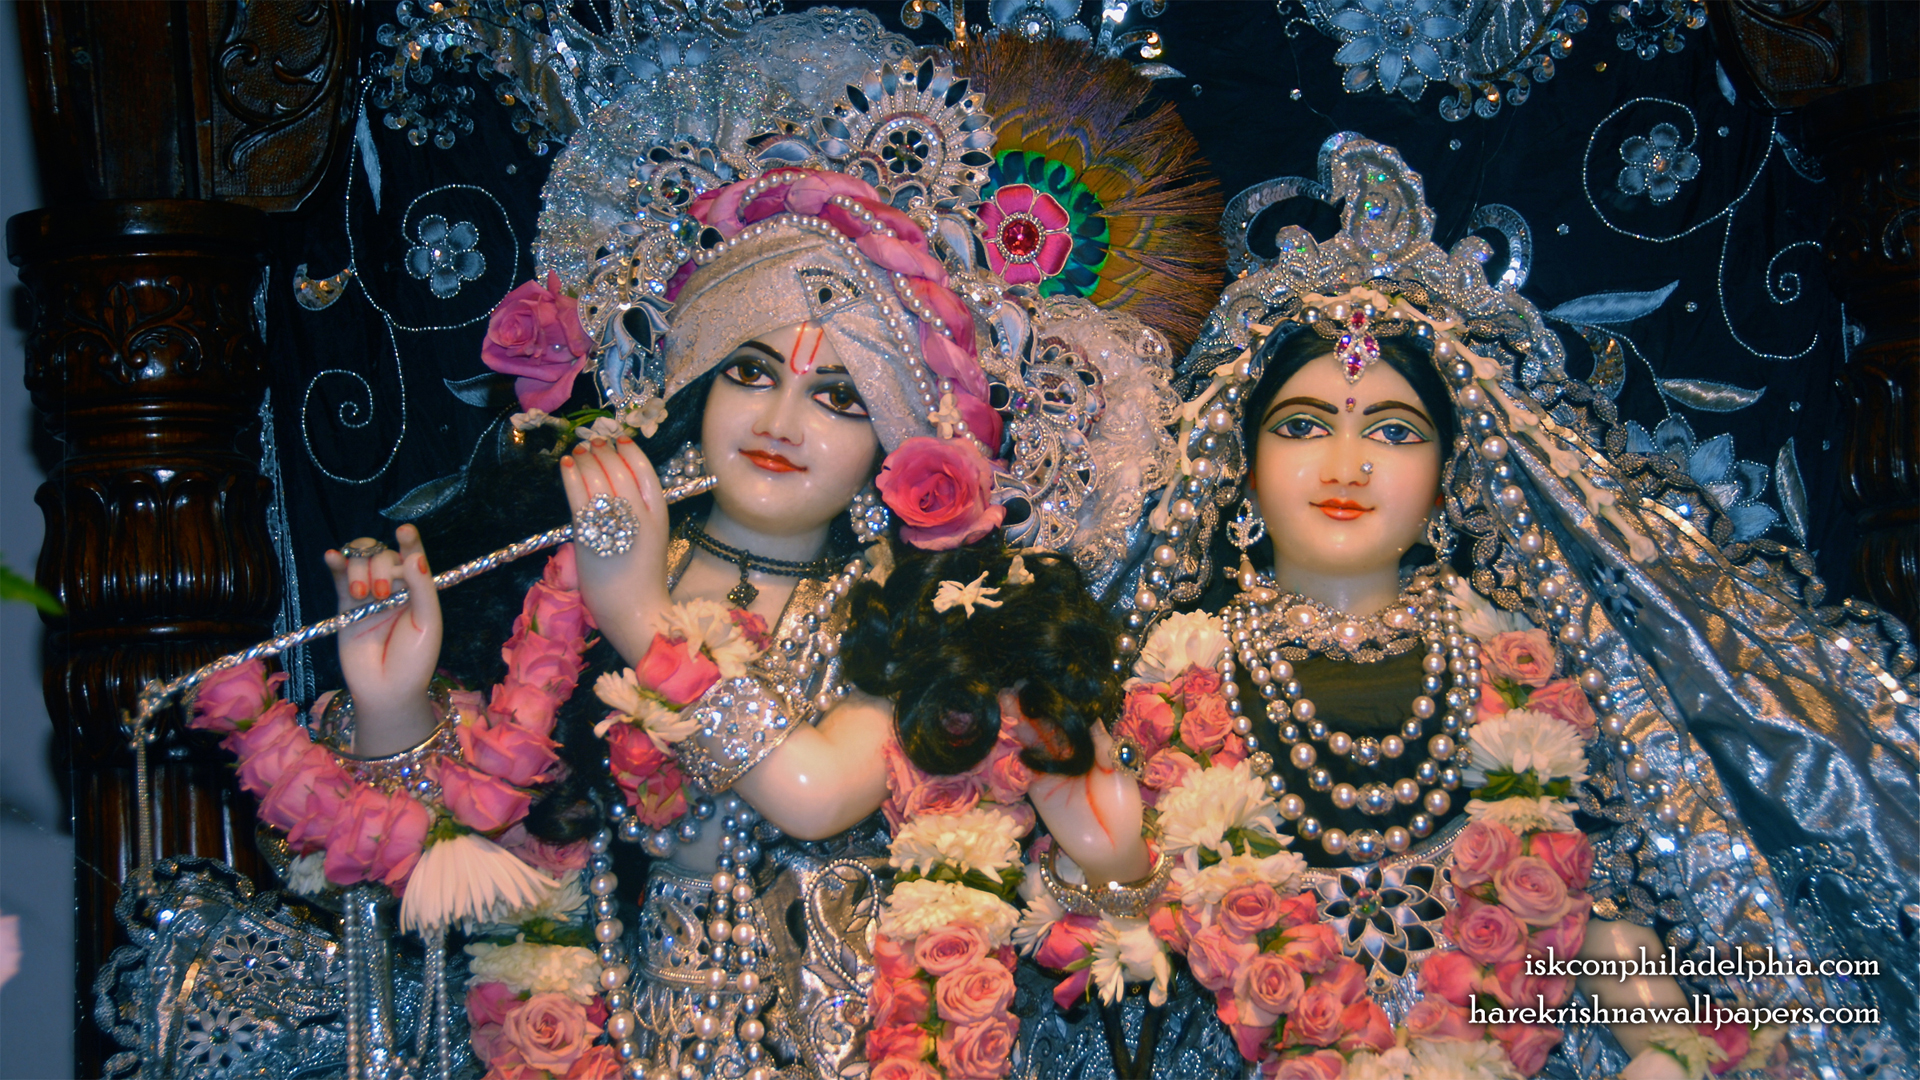 Sri Sri Radha Krishna Close up Wallpaper (013) Size 1920x1080 Download